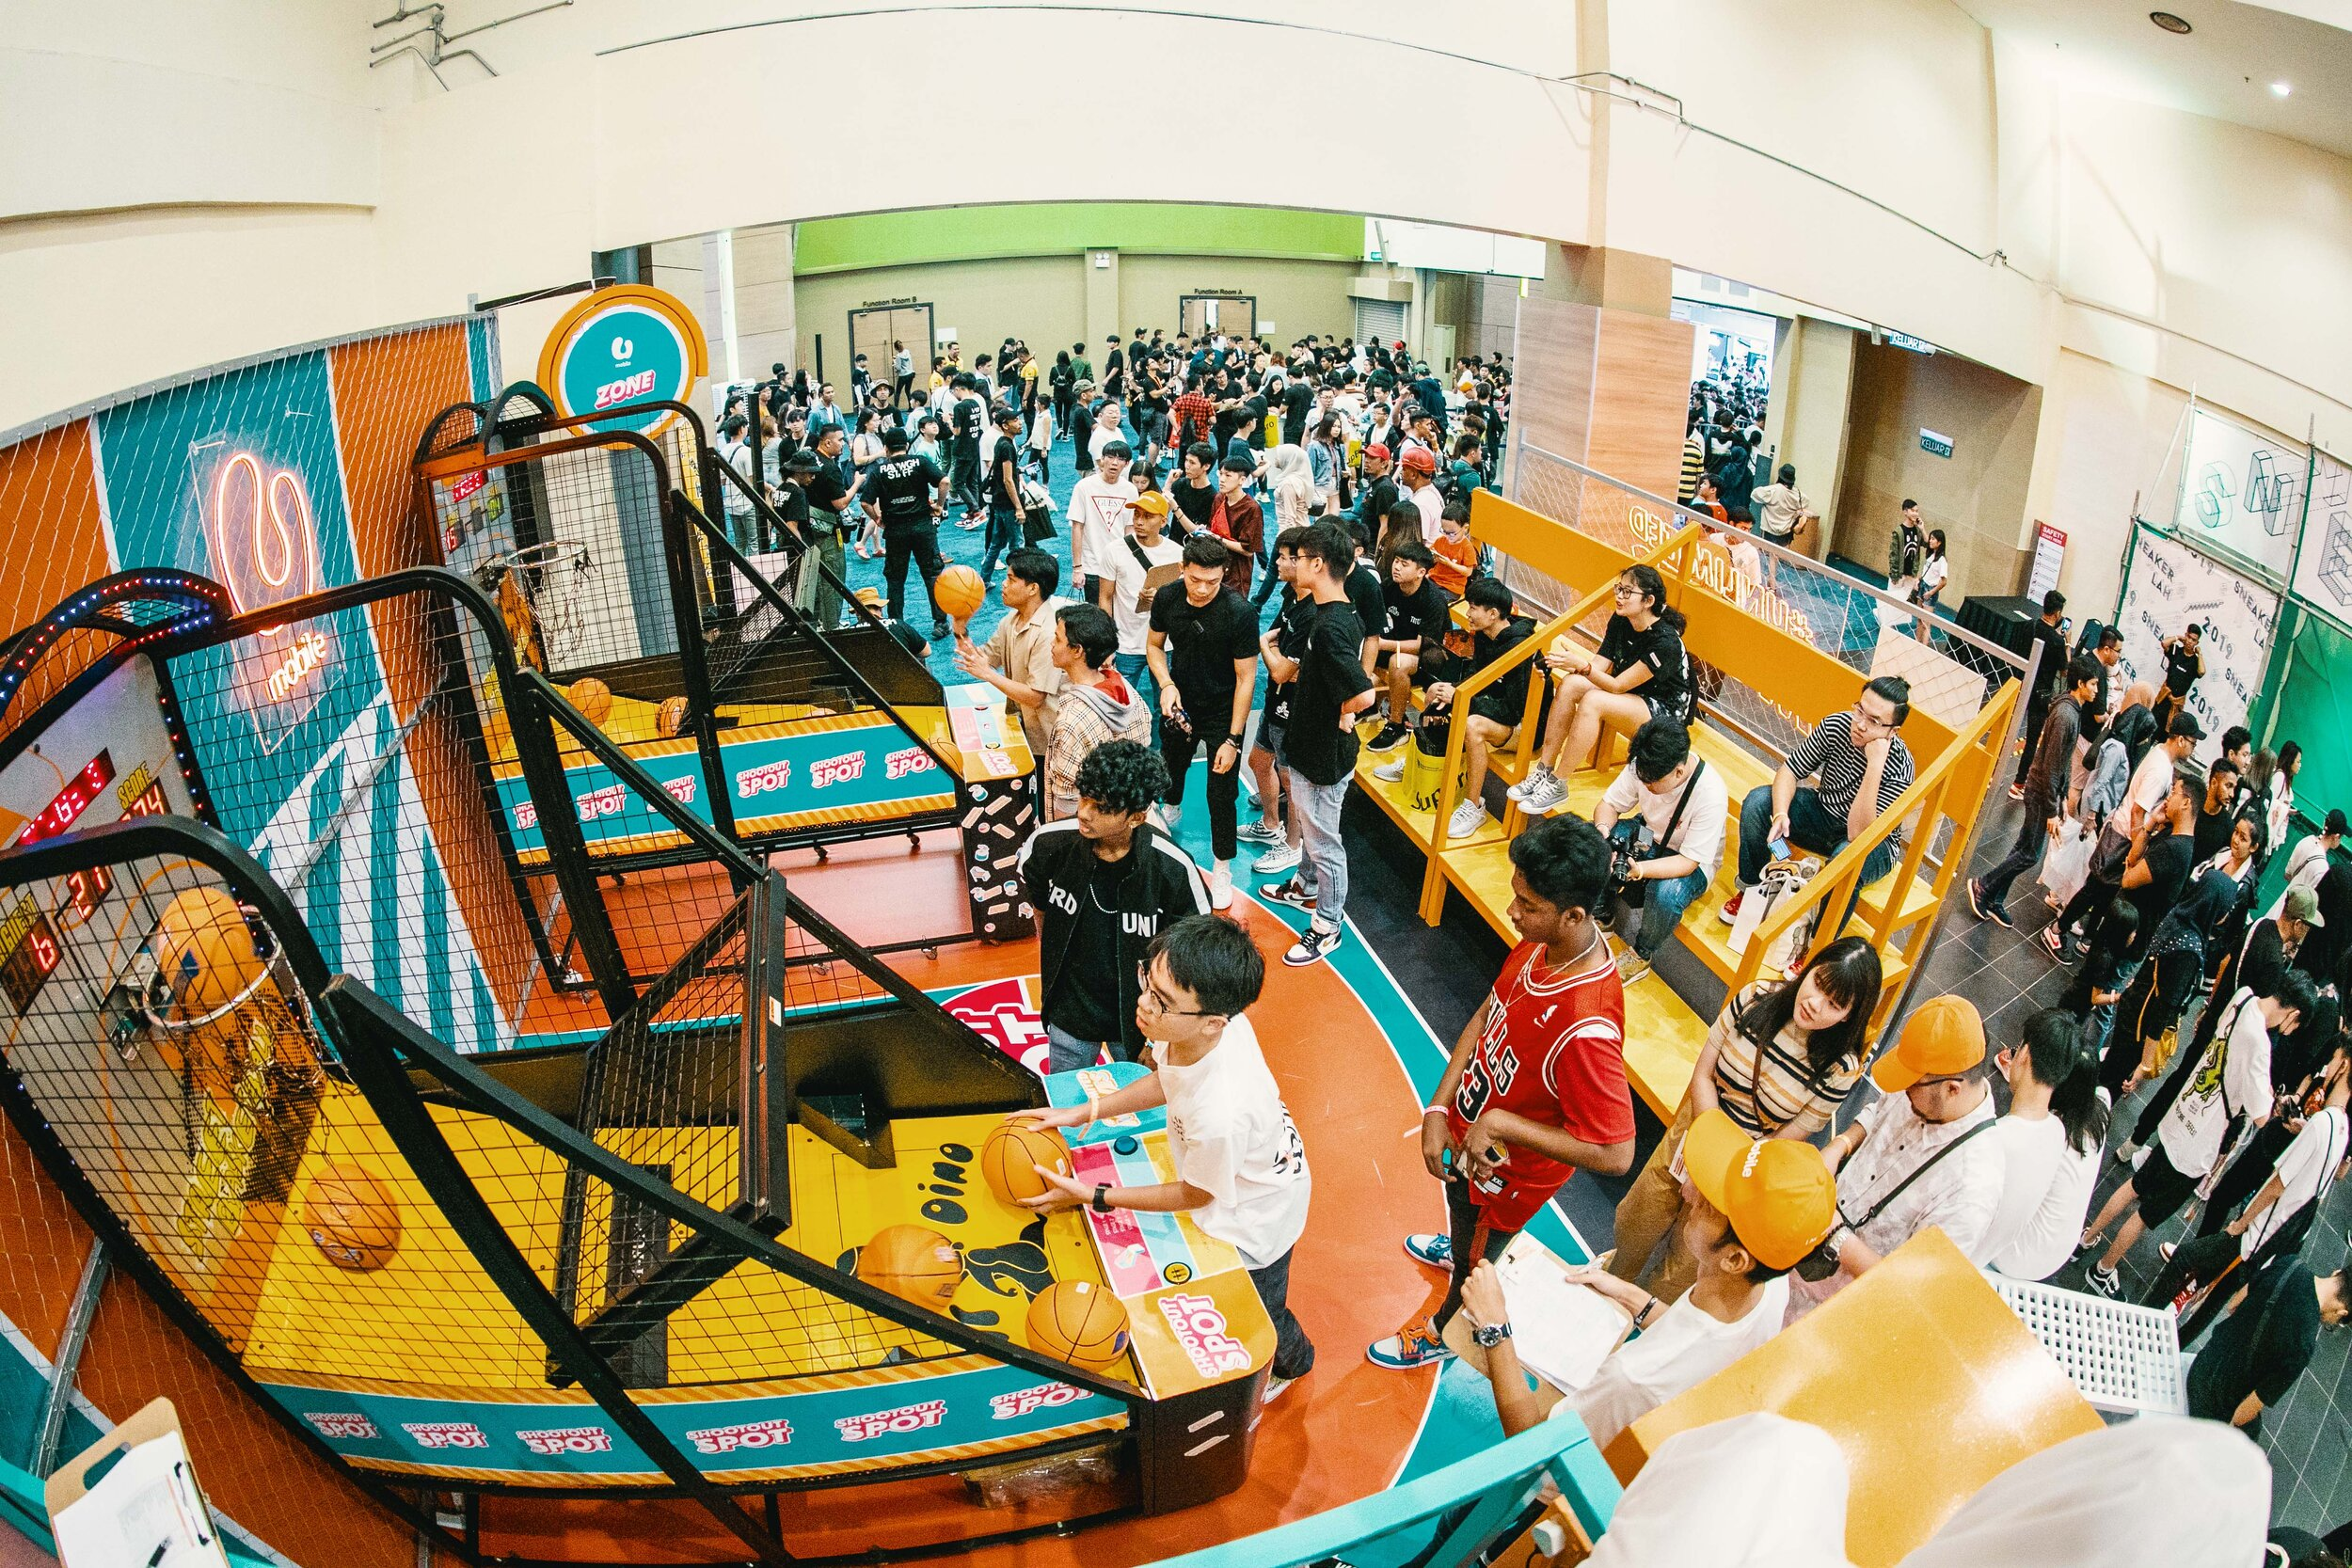 U Mobile x Sneakerlah 1:  Adrenaline was at a high at the U Mobile Zone! Attendees competed with each other to beat the high score at the Shootout Spot to win exclusive U Mobile x SneakerLAH 2019 merchandise.